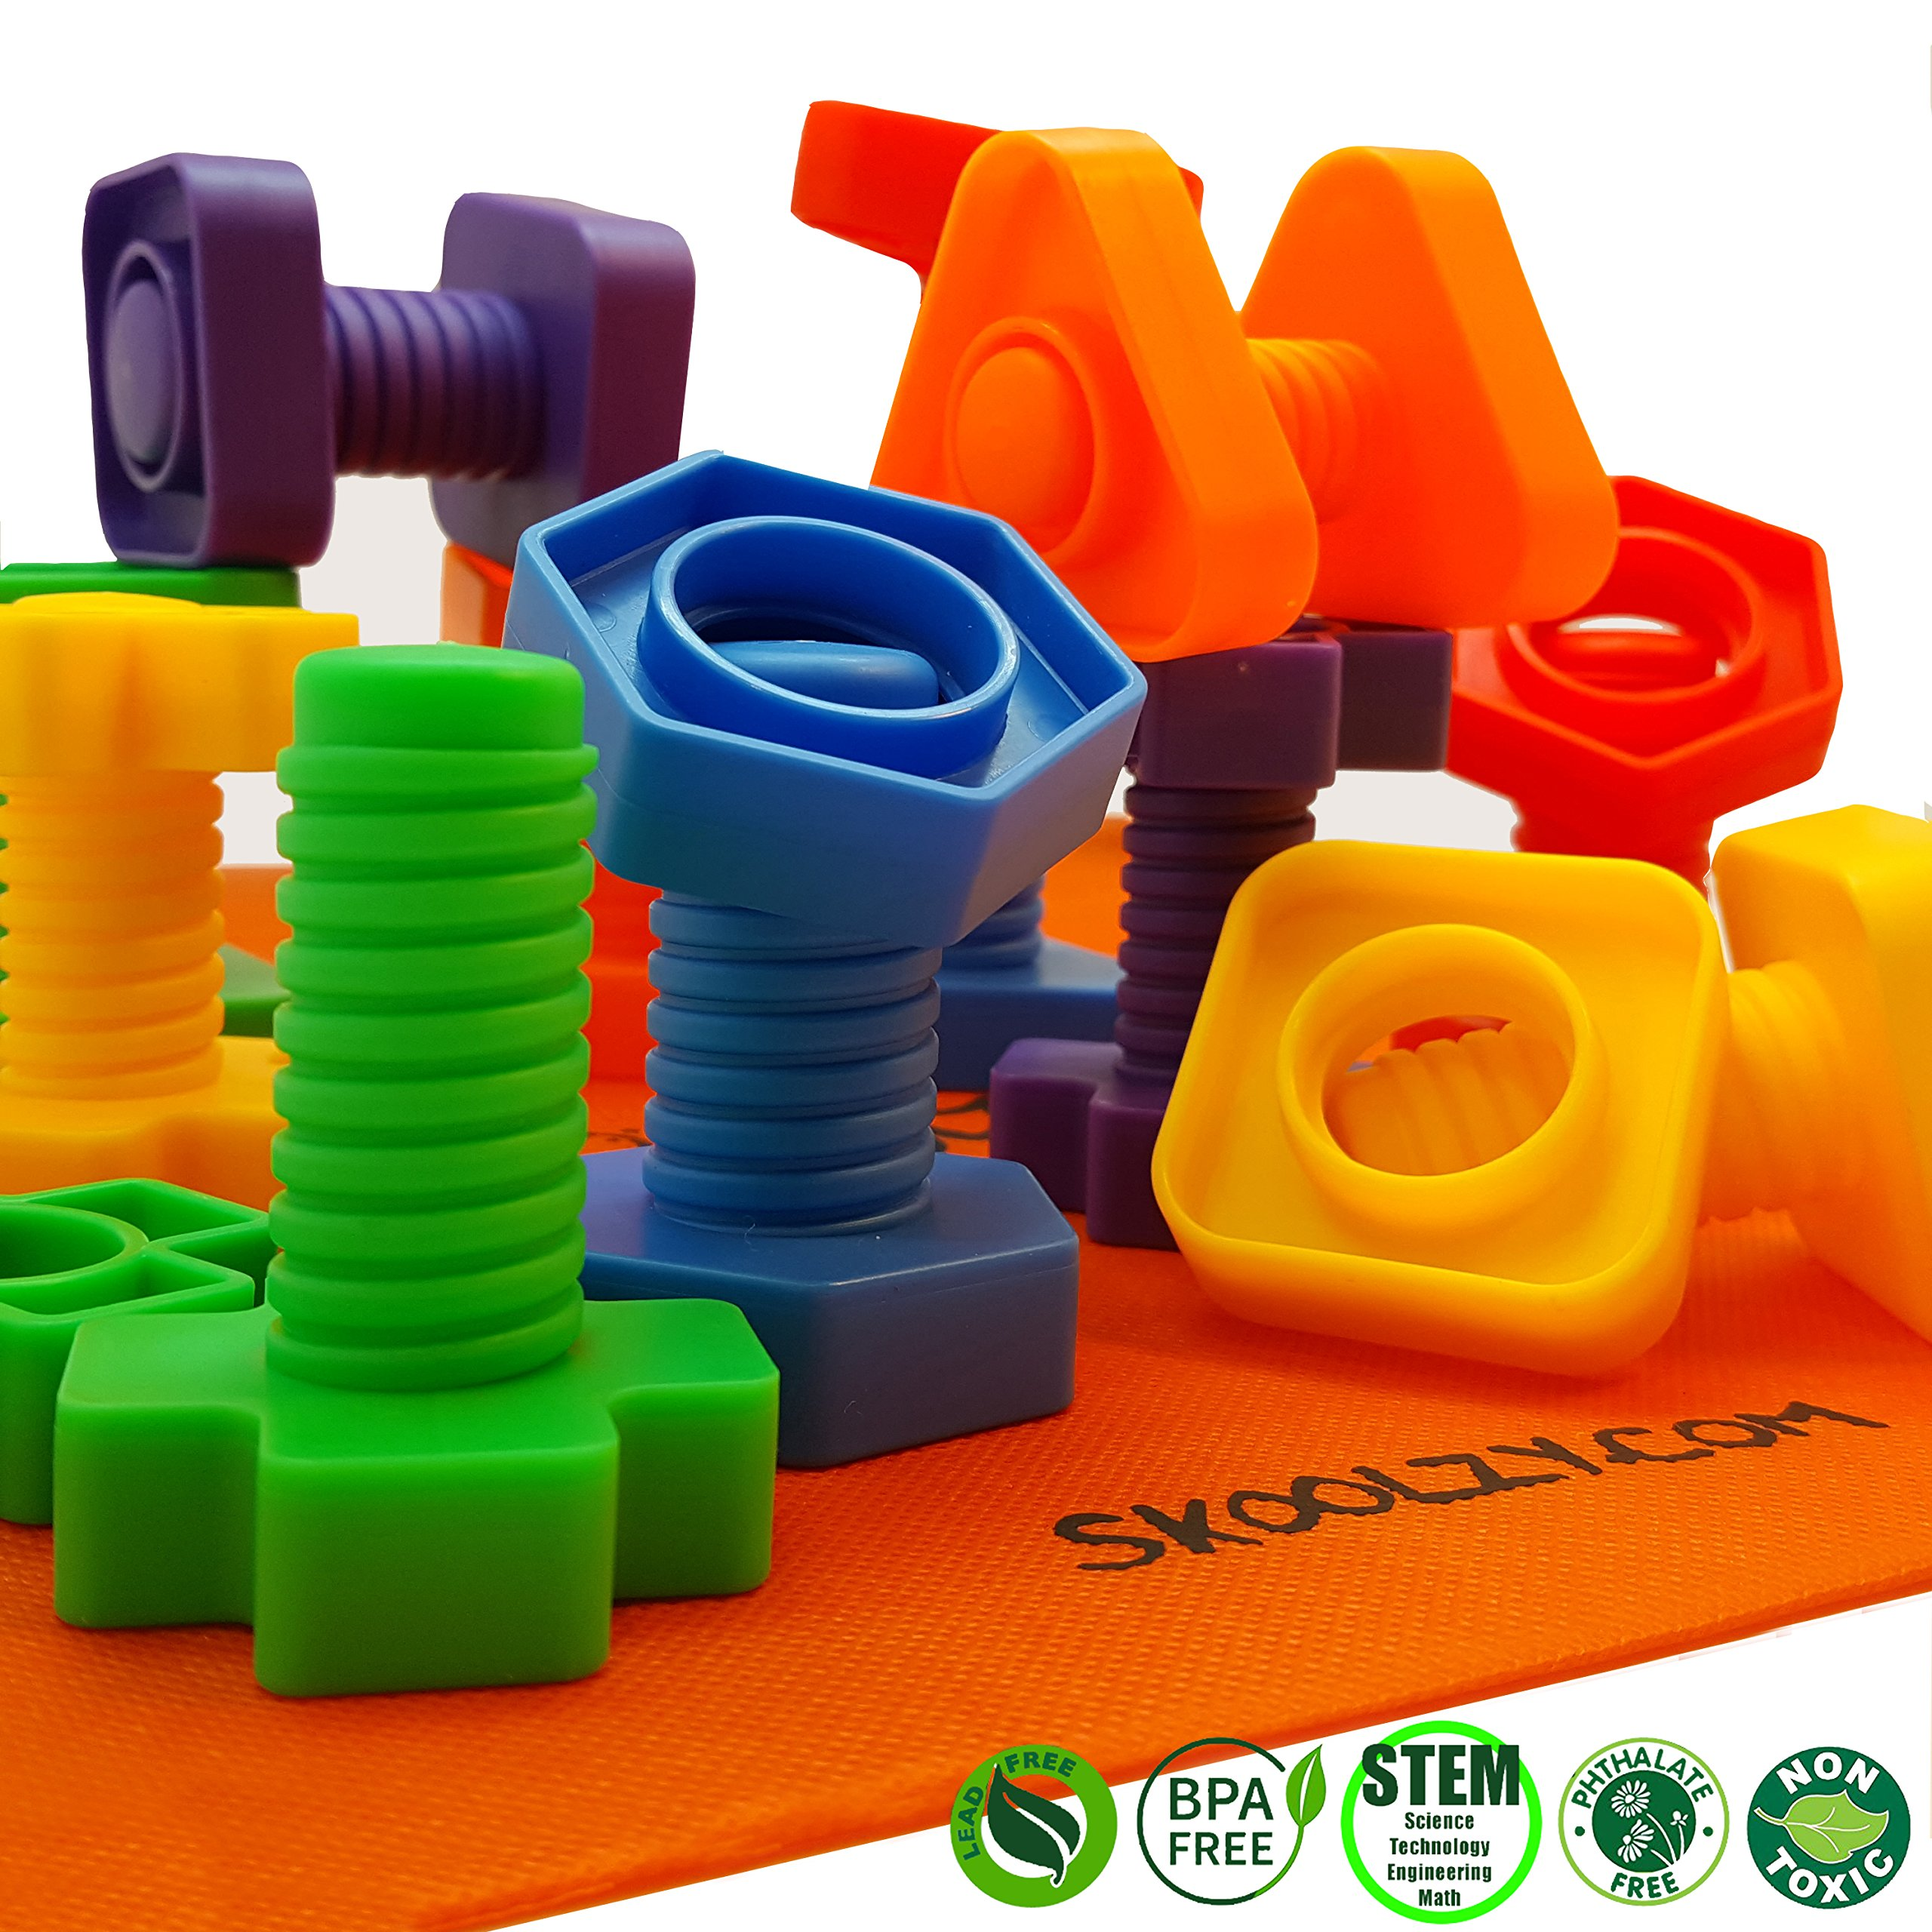 1 Fine Motor Skills Autism Educational Toys for Baby 2 Jumbo Nuts and Bolts Set with Toy Storage and eBook 3 Year Old Boy and Girl Montessori Toddler Rainbow Matching Game Activities 24 pc